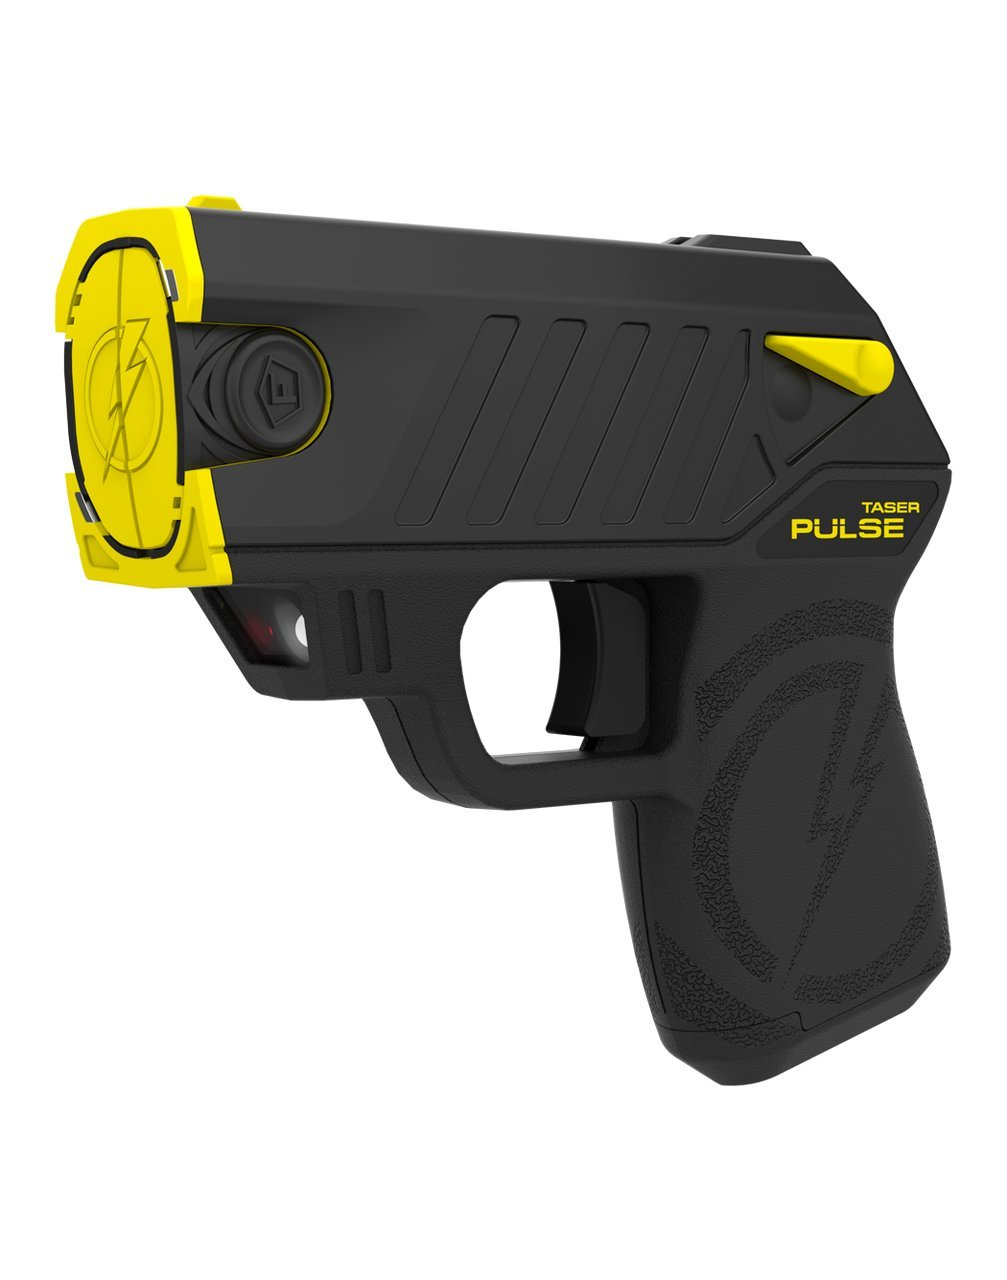 Taser Pulse Self-Defense Tool – (2) Cartridges, (1) Conductive Target